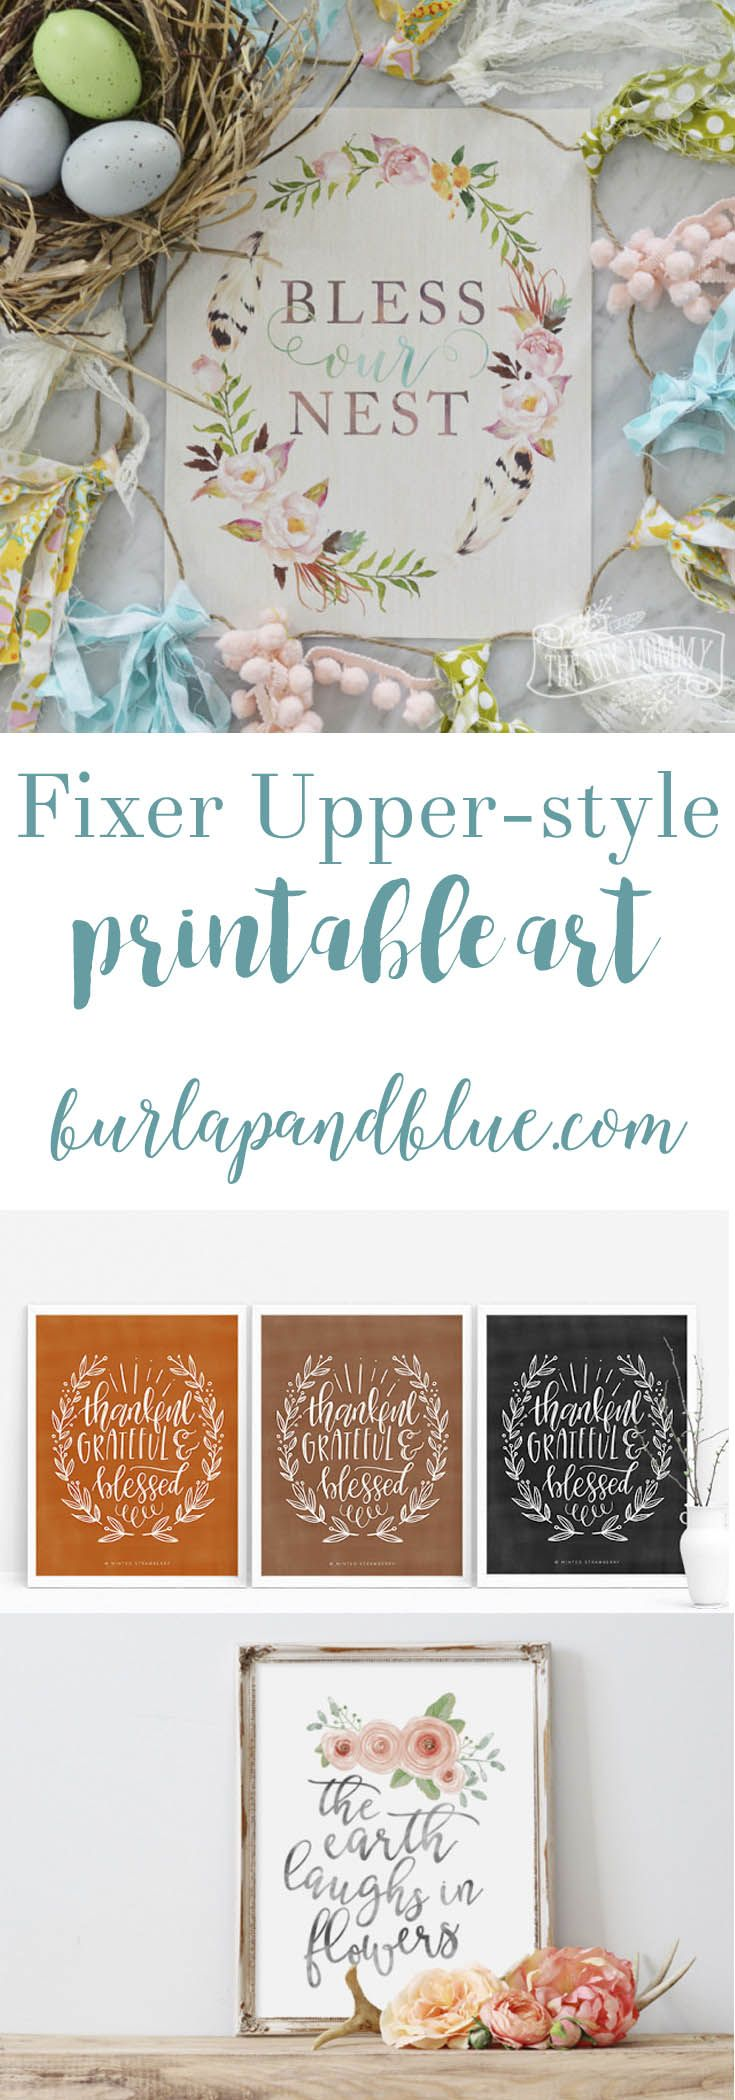 Fixer Upper | Free Printables | Rustic Decor | Farmhouse Style If you love the rustic, farmhouse style of Fixer Upper, you won't want to miss this collection of free printable art! Lots of wall decor ideas!